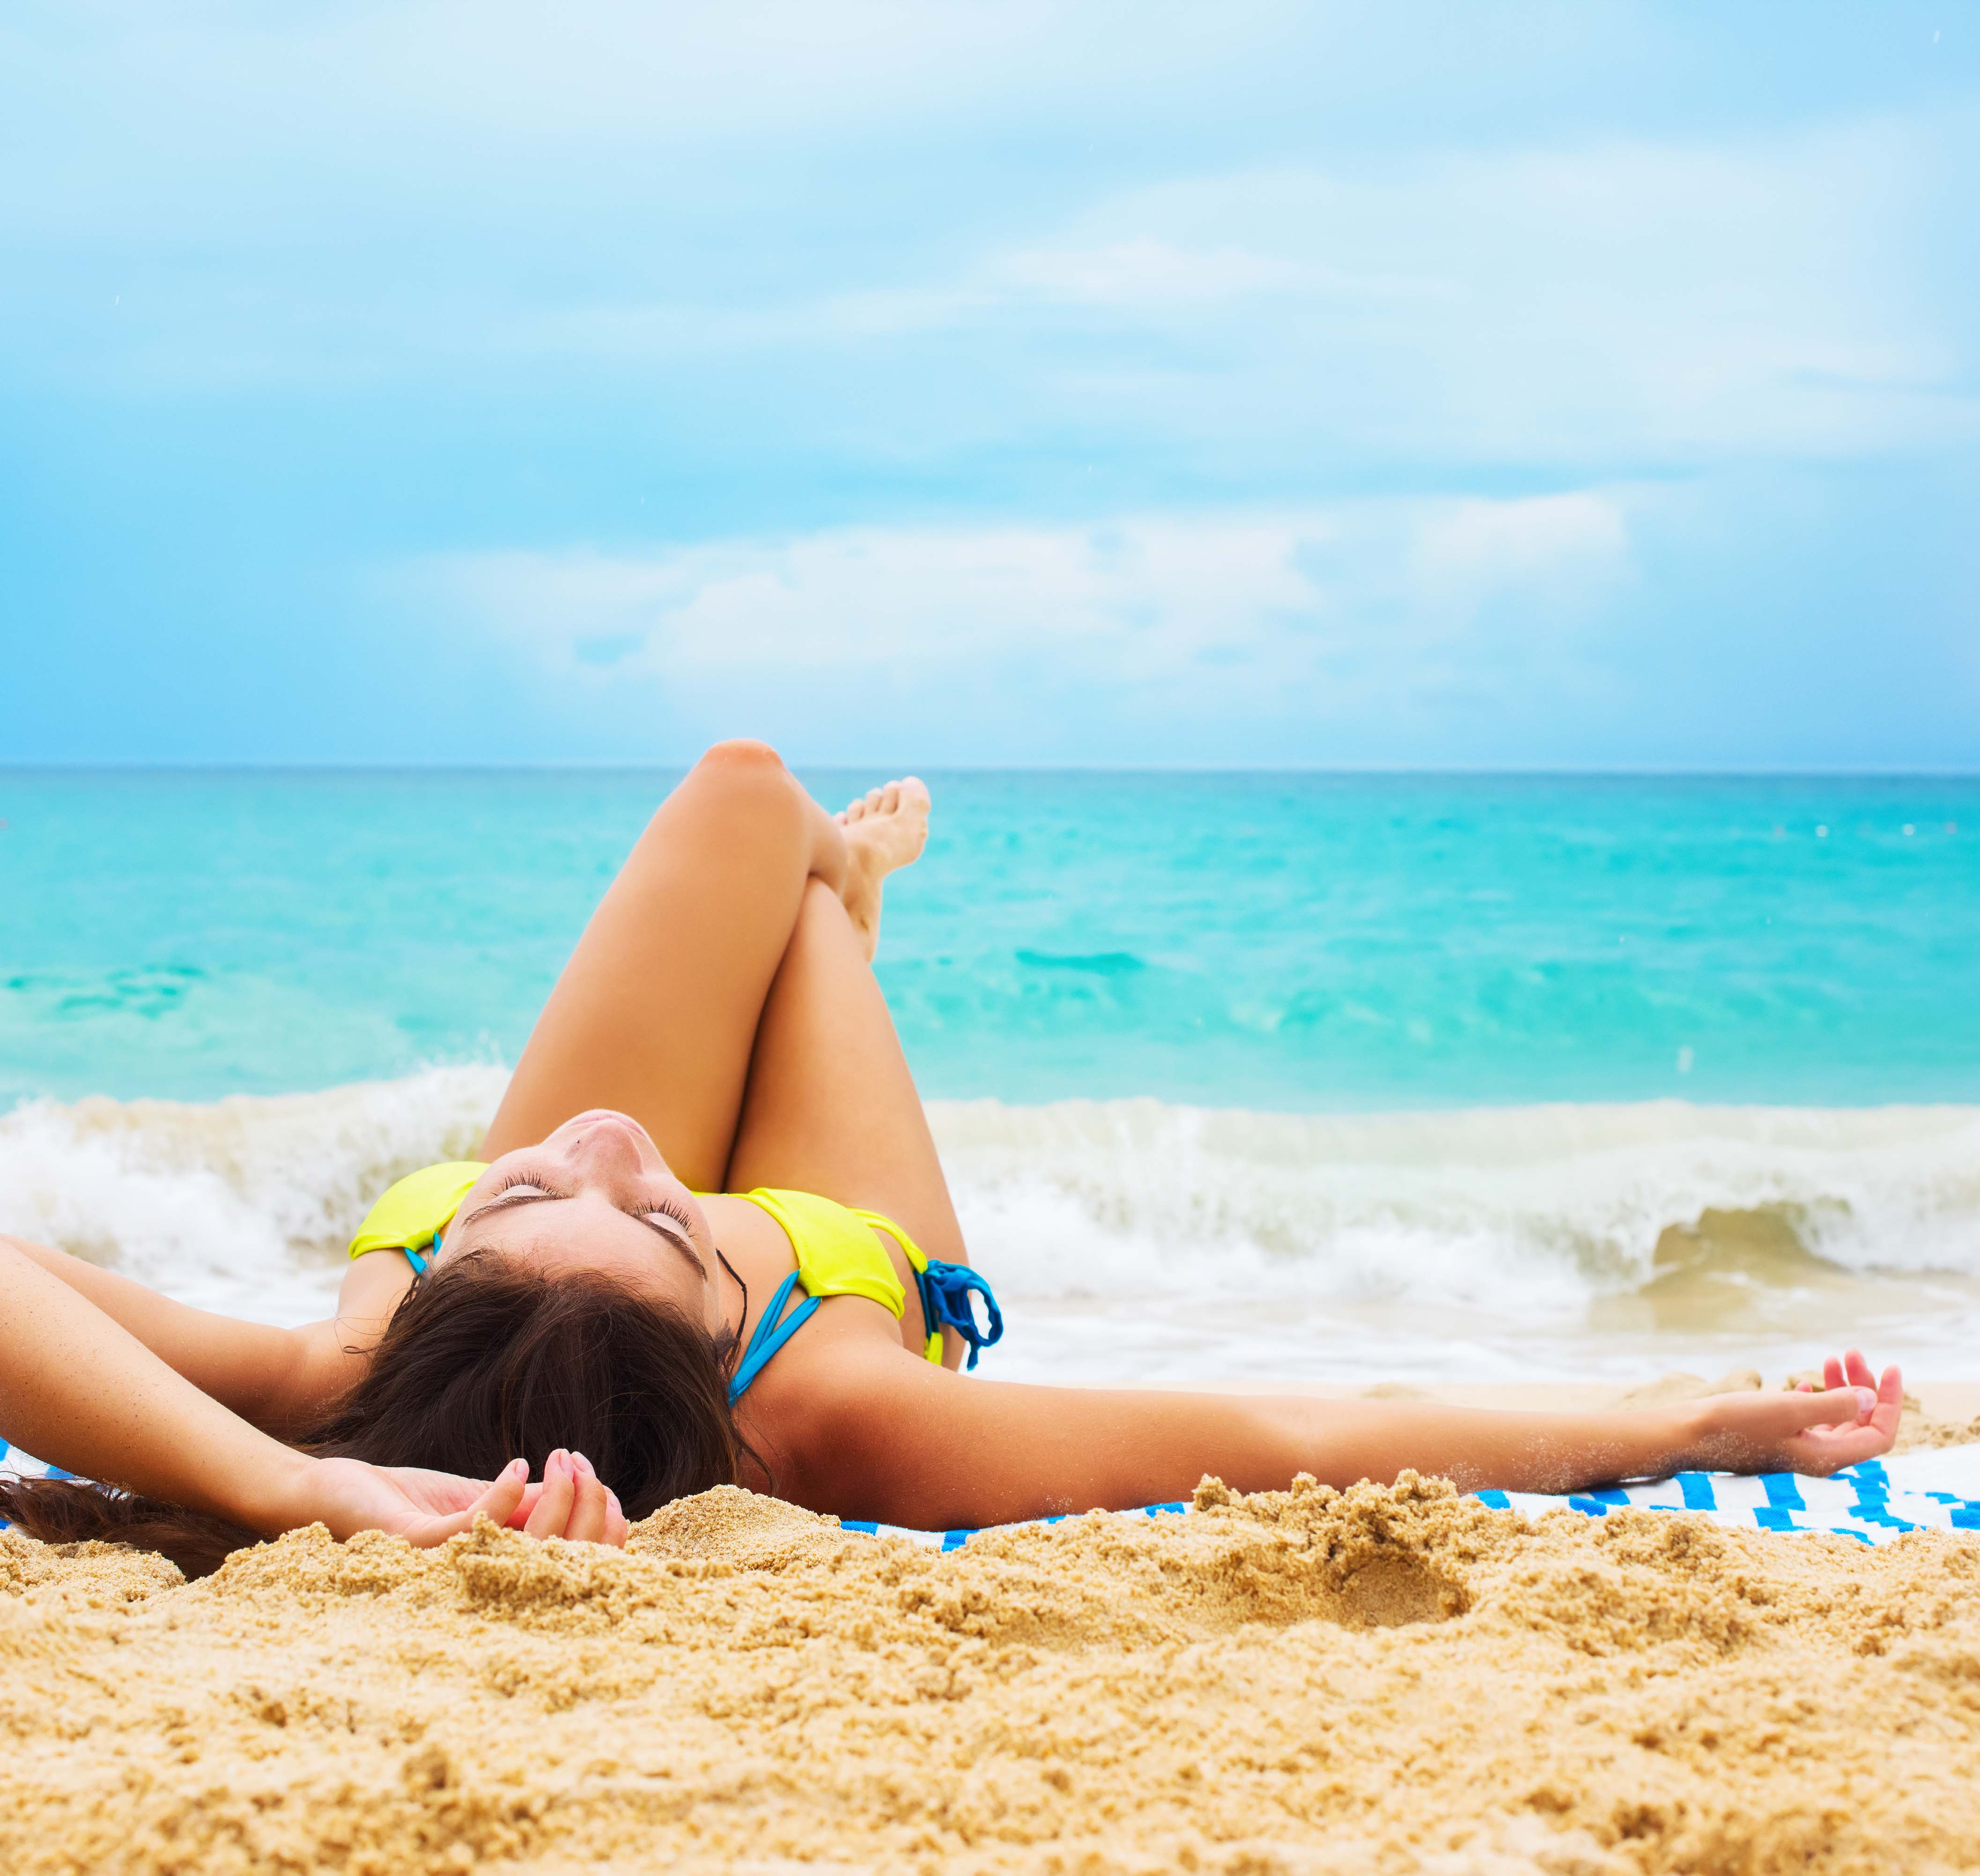 woman tanning on beach